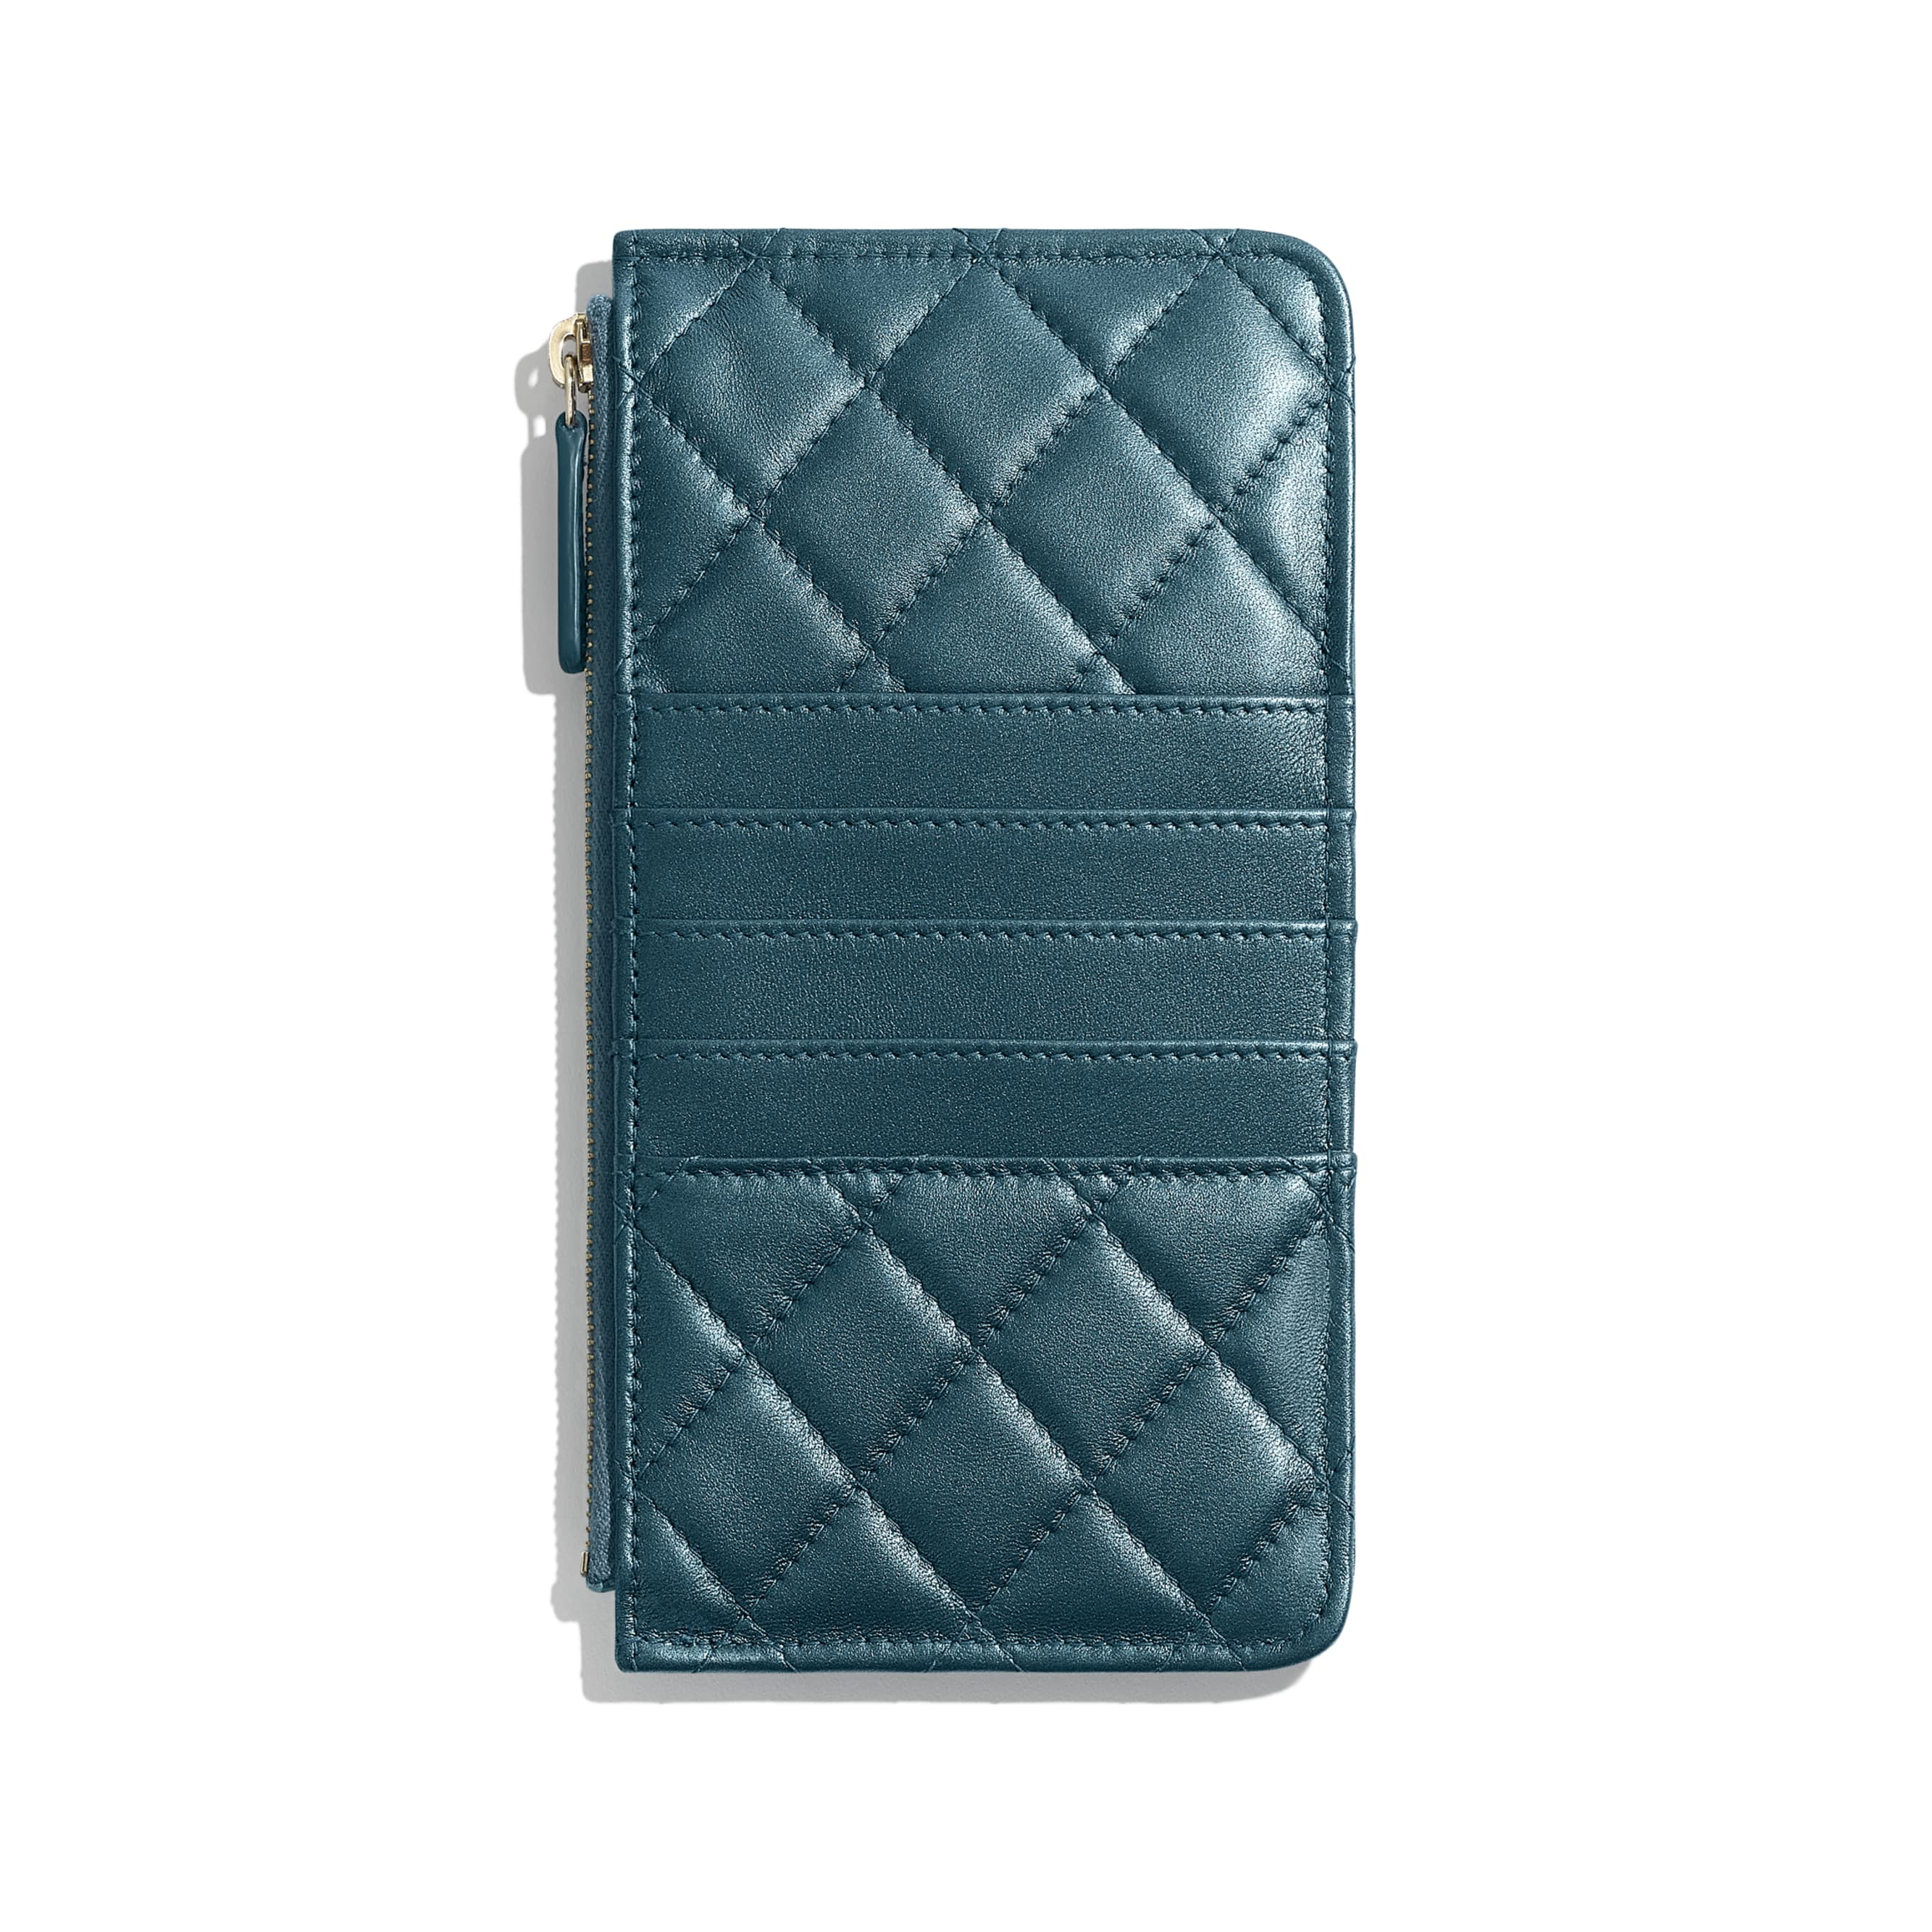 BOY CHANEL Phone & Card Holder - Blue - Metallic Lambskin & Gold Metal - CHANEL - Alternative view - see standard sized version